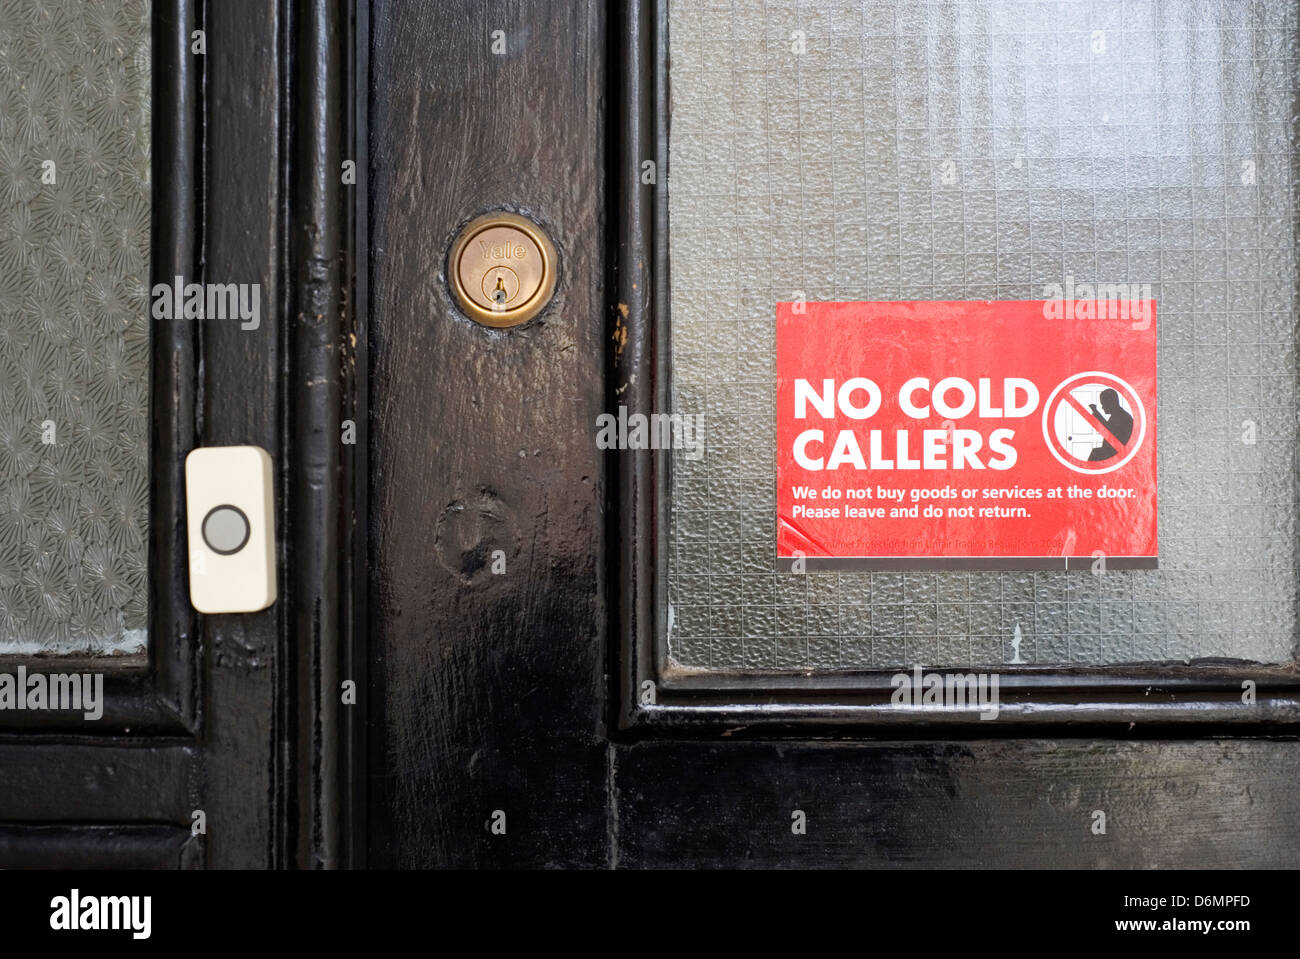 no cold callers sticker placed on a front door - Stock Image